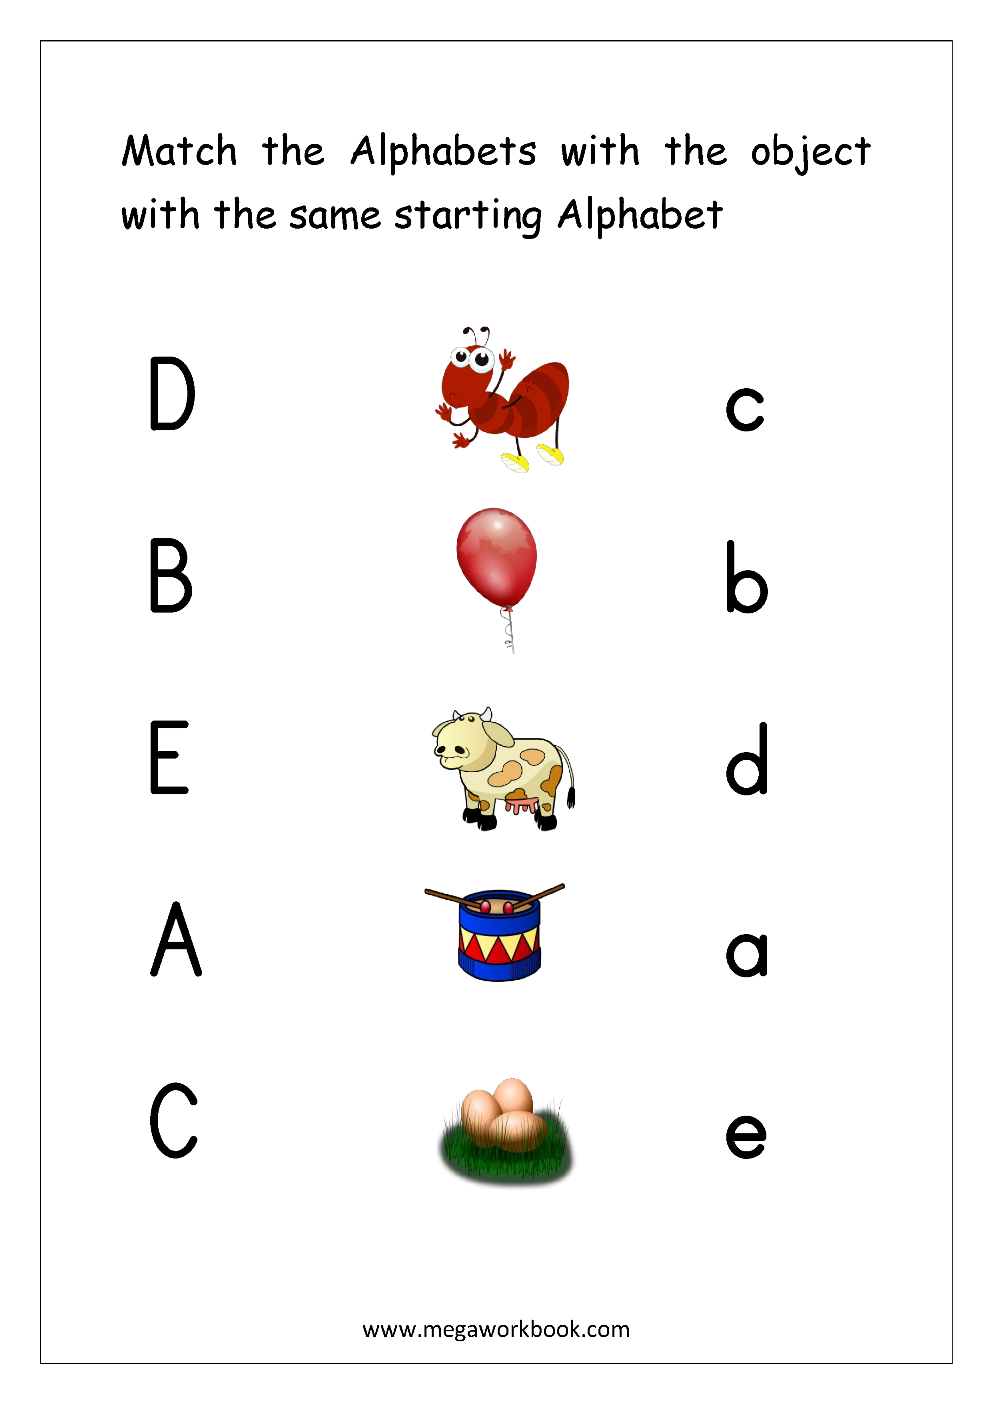 Worksheet Matching Alphabets With Pictures Worksheets free english worksheets alphabet matching megaworkbook worksheet match object with the starting smallcapital letters